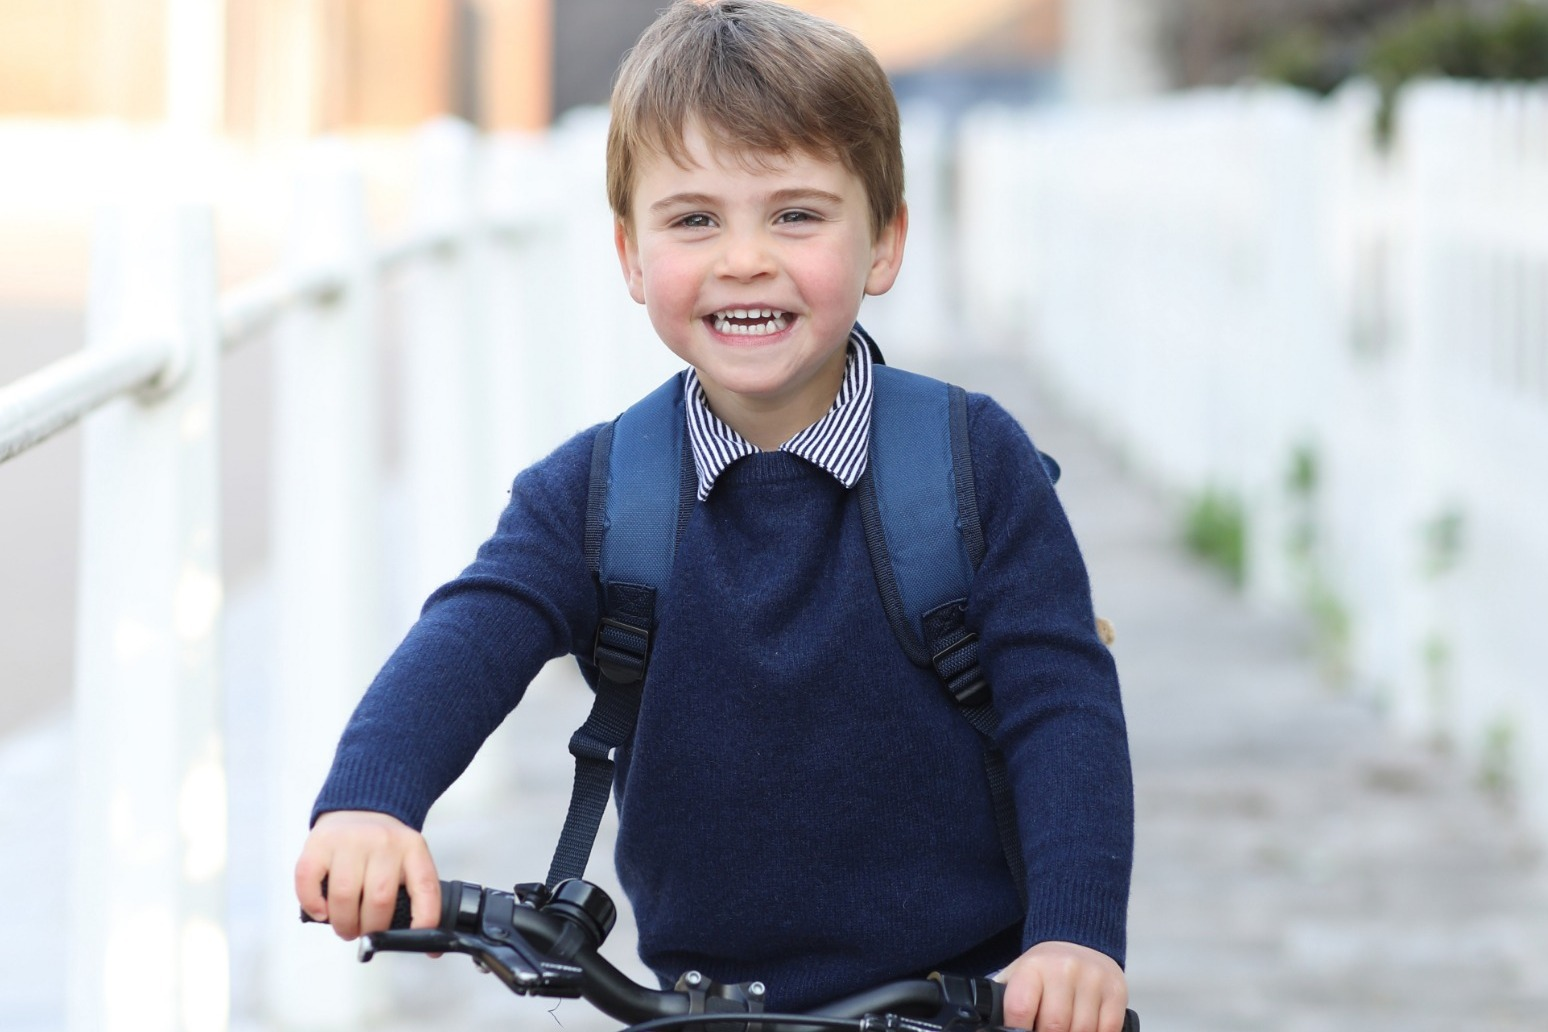 Prince Louis's third birthday marked with picture of young royal on his bike